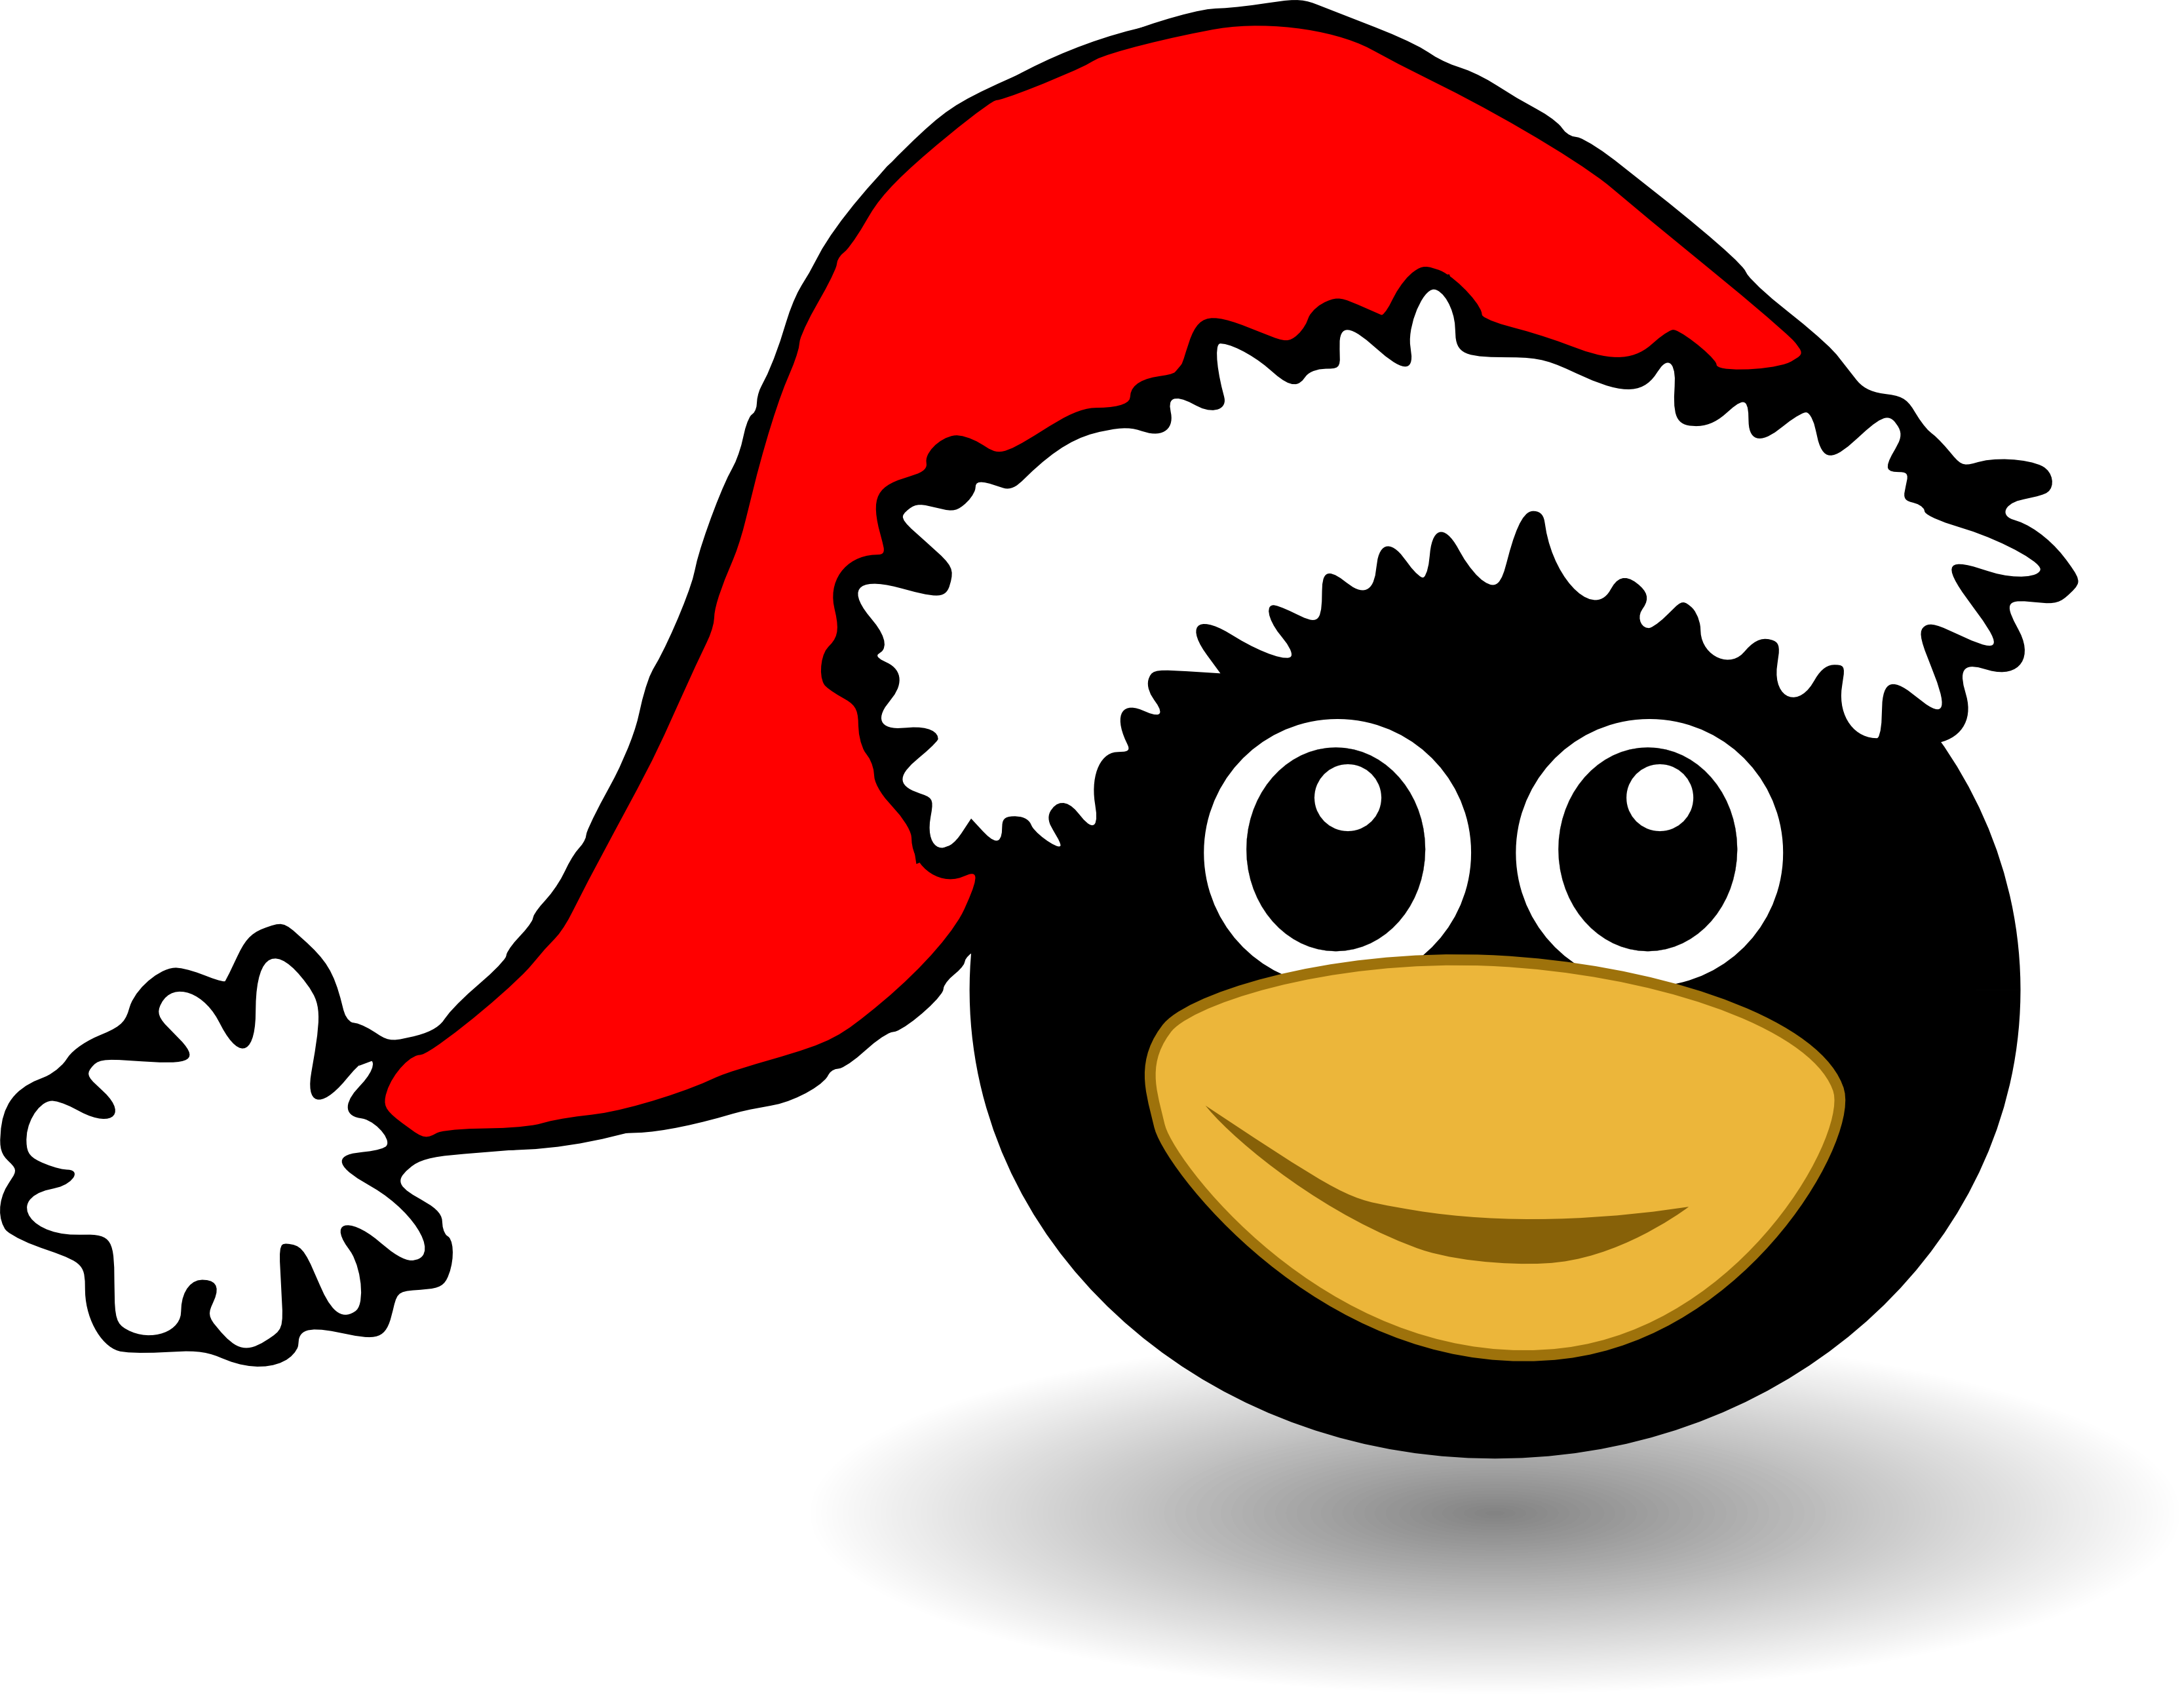 Penguin christmas clipart clip freeuse library Christmas Penguin Clipart   Clipart Panda - Free Clipart Images clip freeuse library